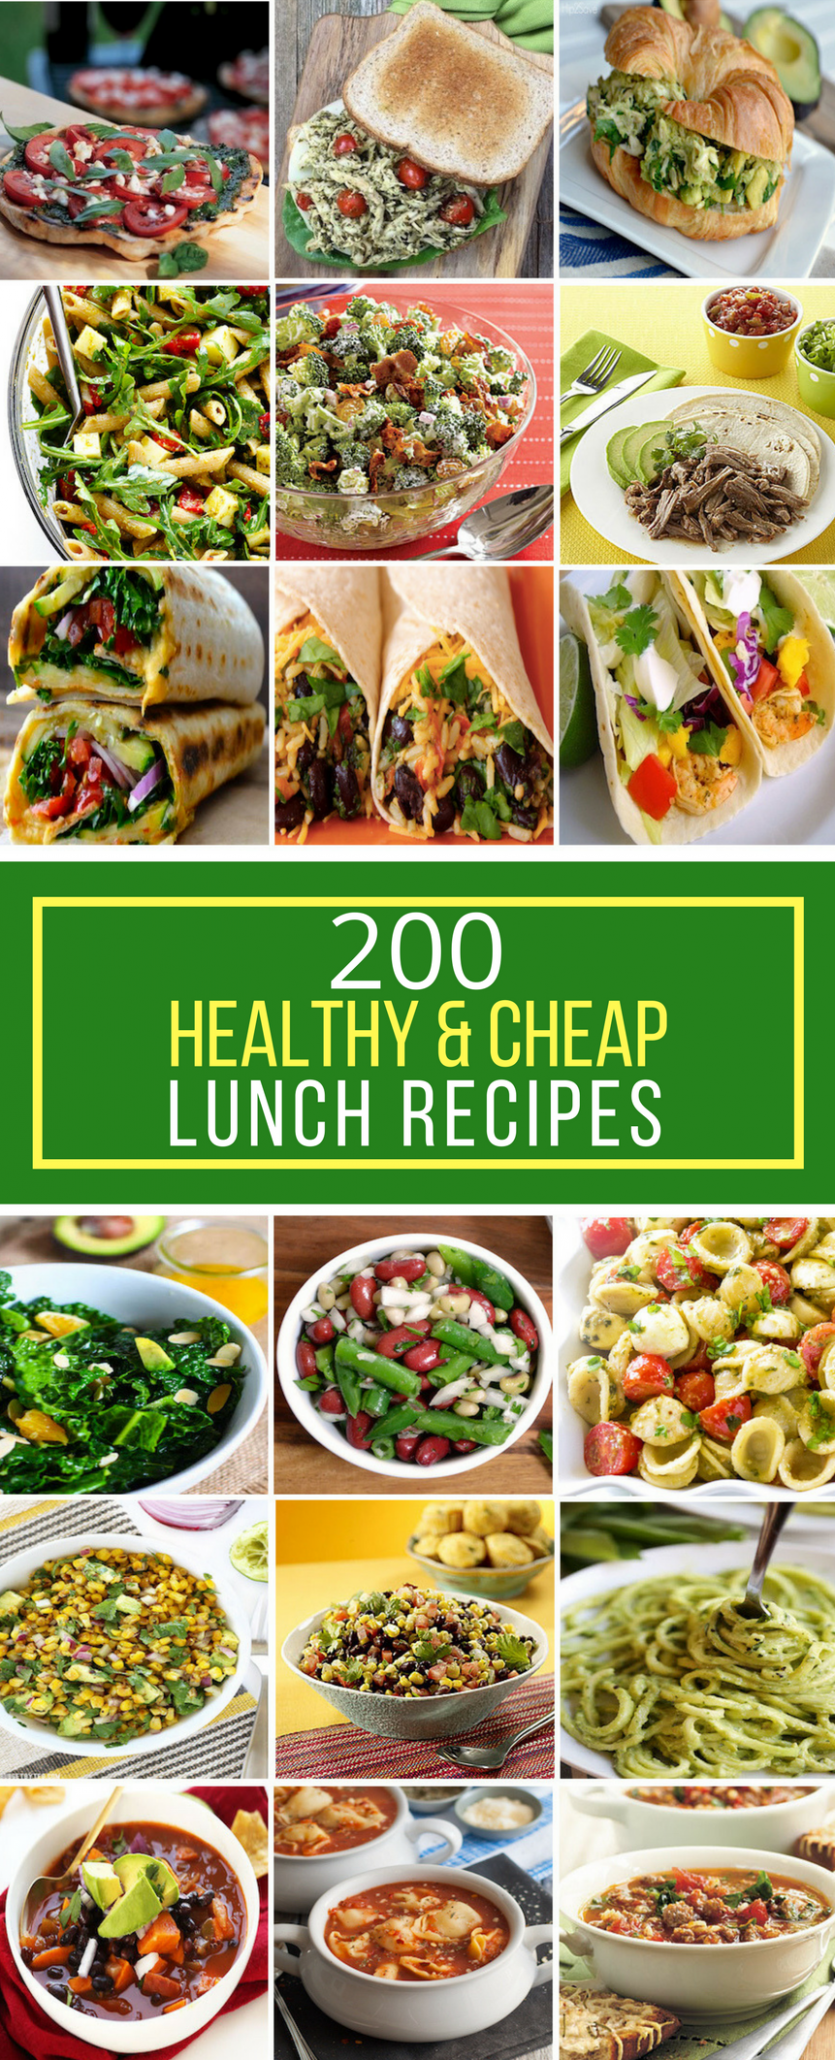 11 Healthy & Cheap Lunch Recipes - Prudent Penny Pincher - food recipes cheap